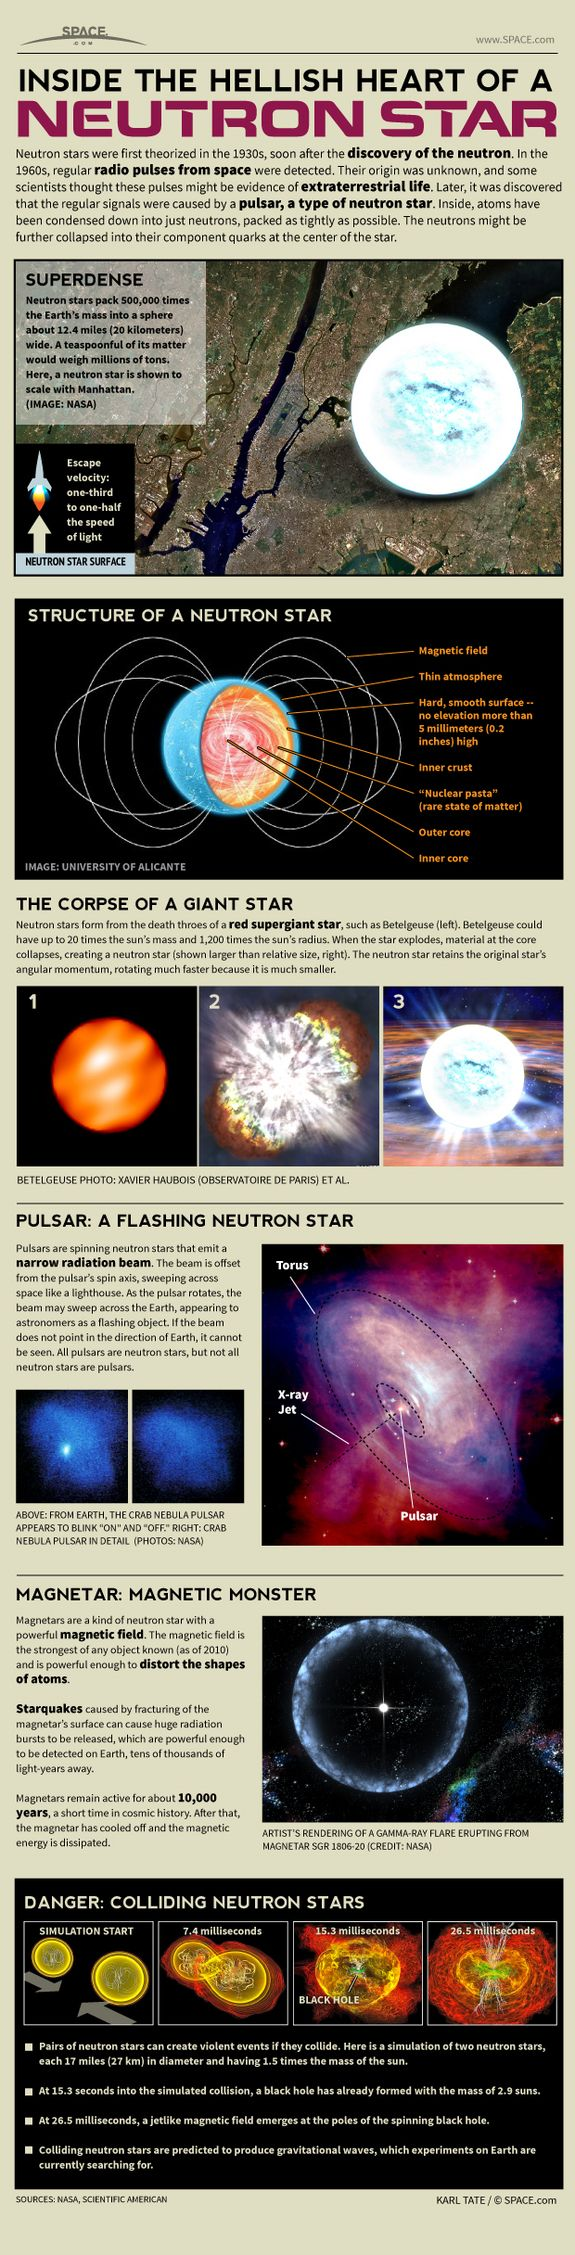 Neutron stars have always been fascinating to me. Here's a handy little infographic explaining them.